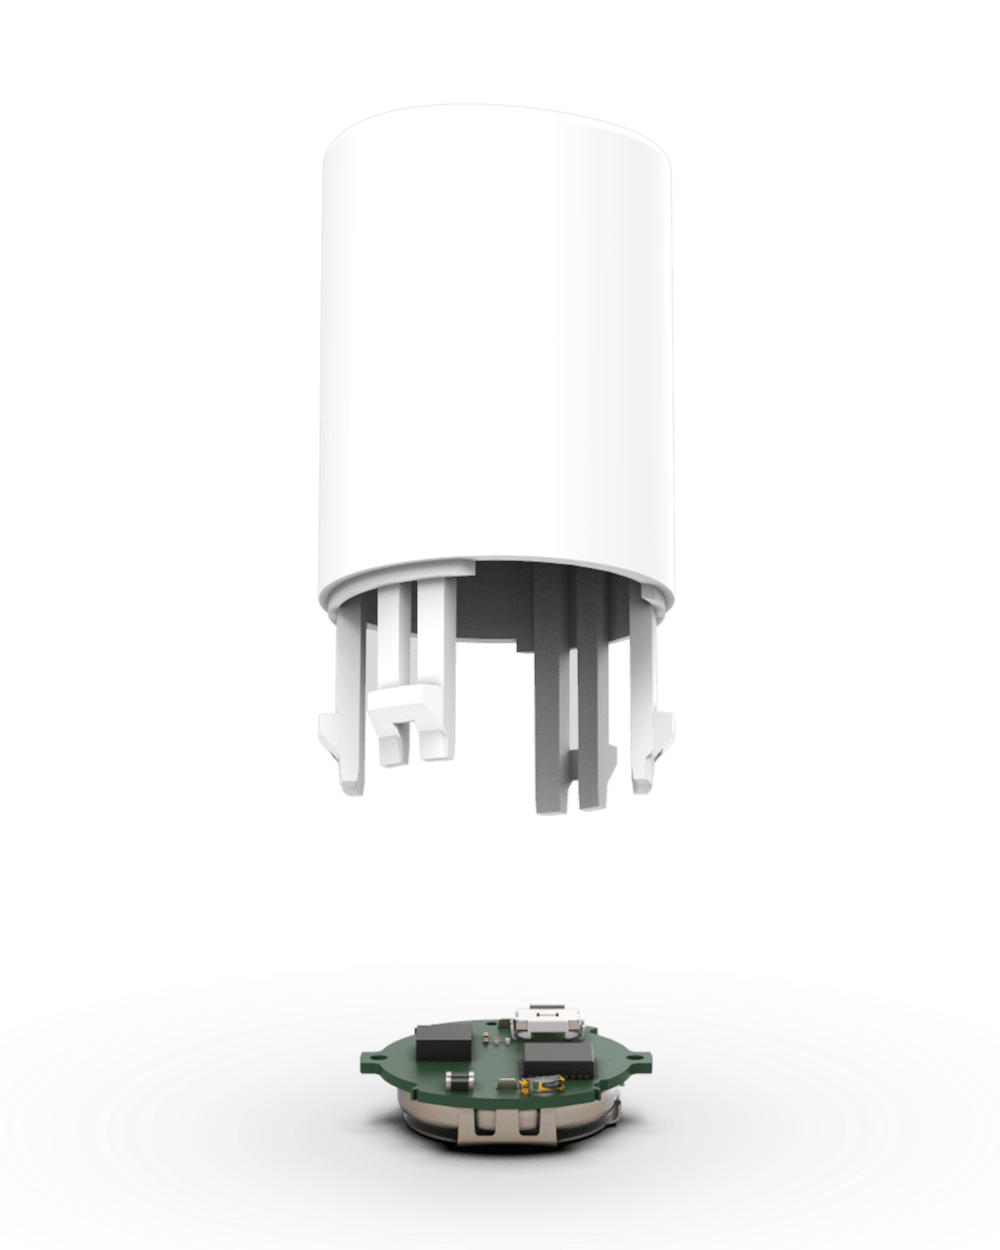 View of a connected auto injector device on a white background